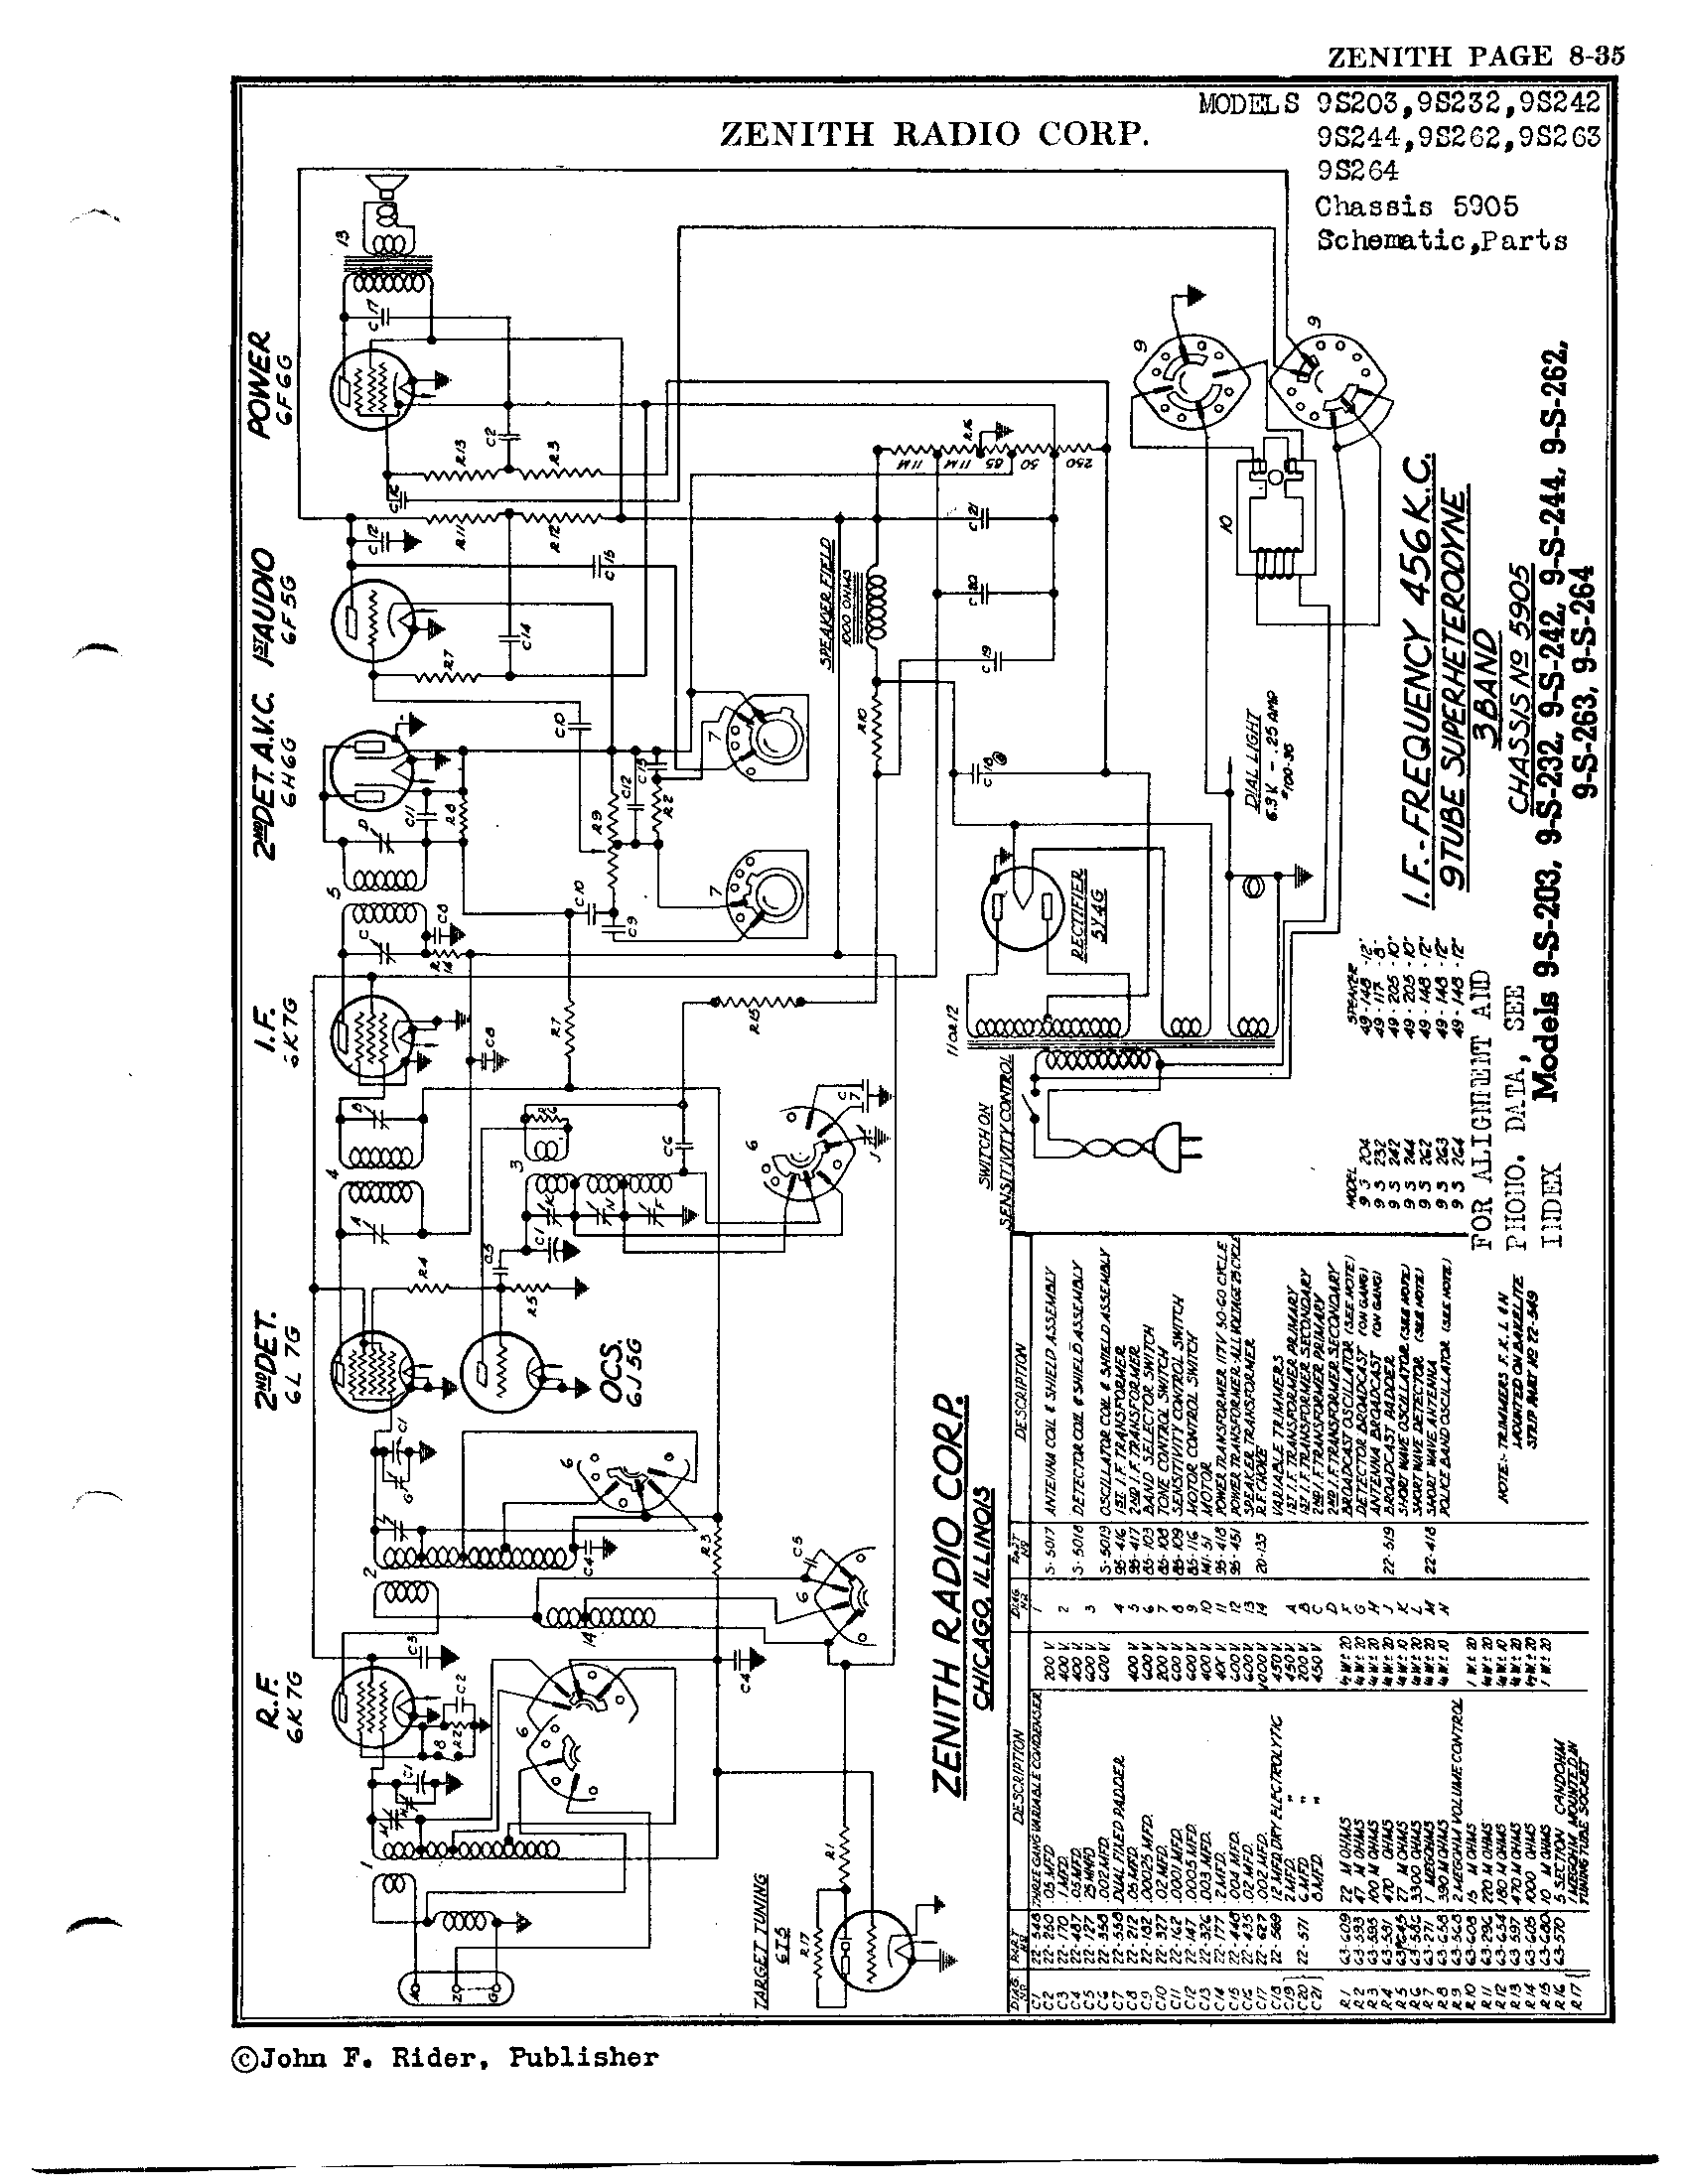 Zenith Radio Corp 9s262 Antique Electronic Supply. Page 1 8296 Kb Rider Manual Volume 8. Wiring. Zenith Tube Radio Schematics N73 1 At Scoala.co